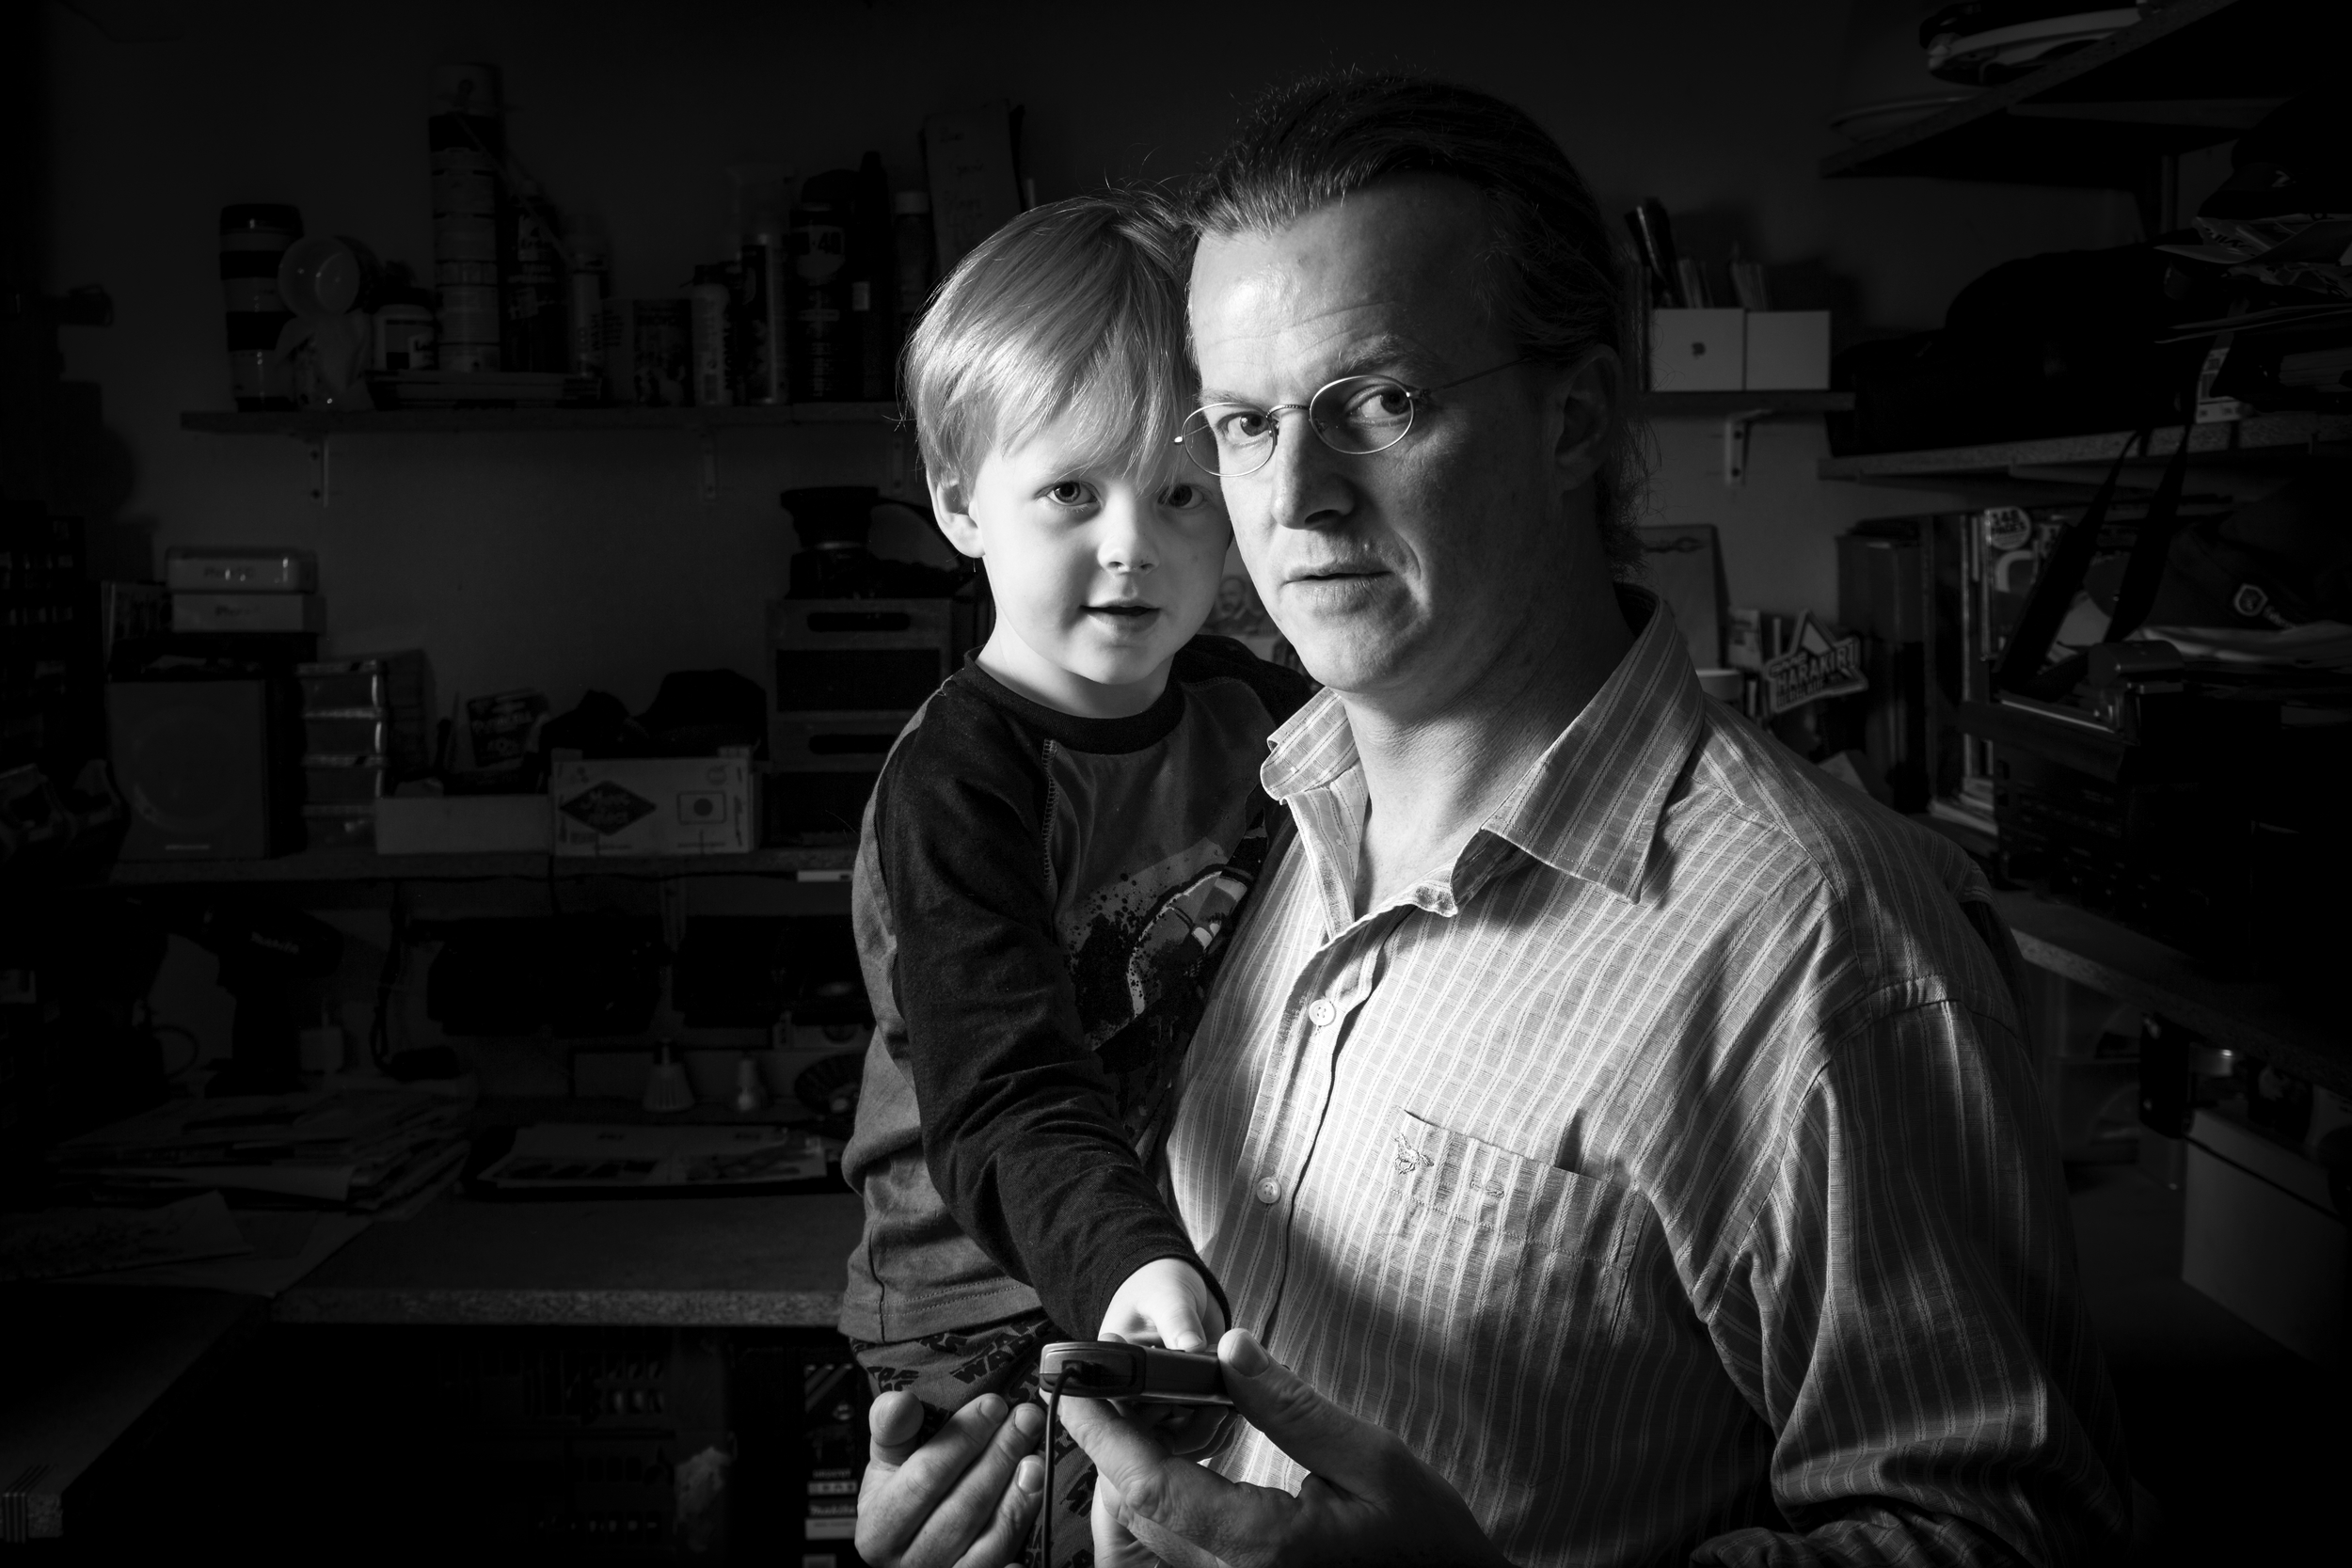 Here I was playing with some flashes in my workshop and my eldest came to 'give me some help' so we had a quick lesson in lighting!